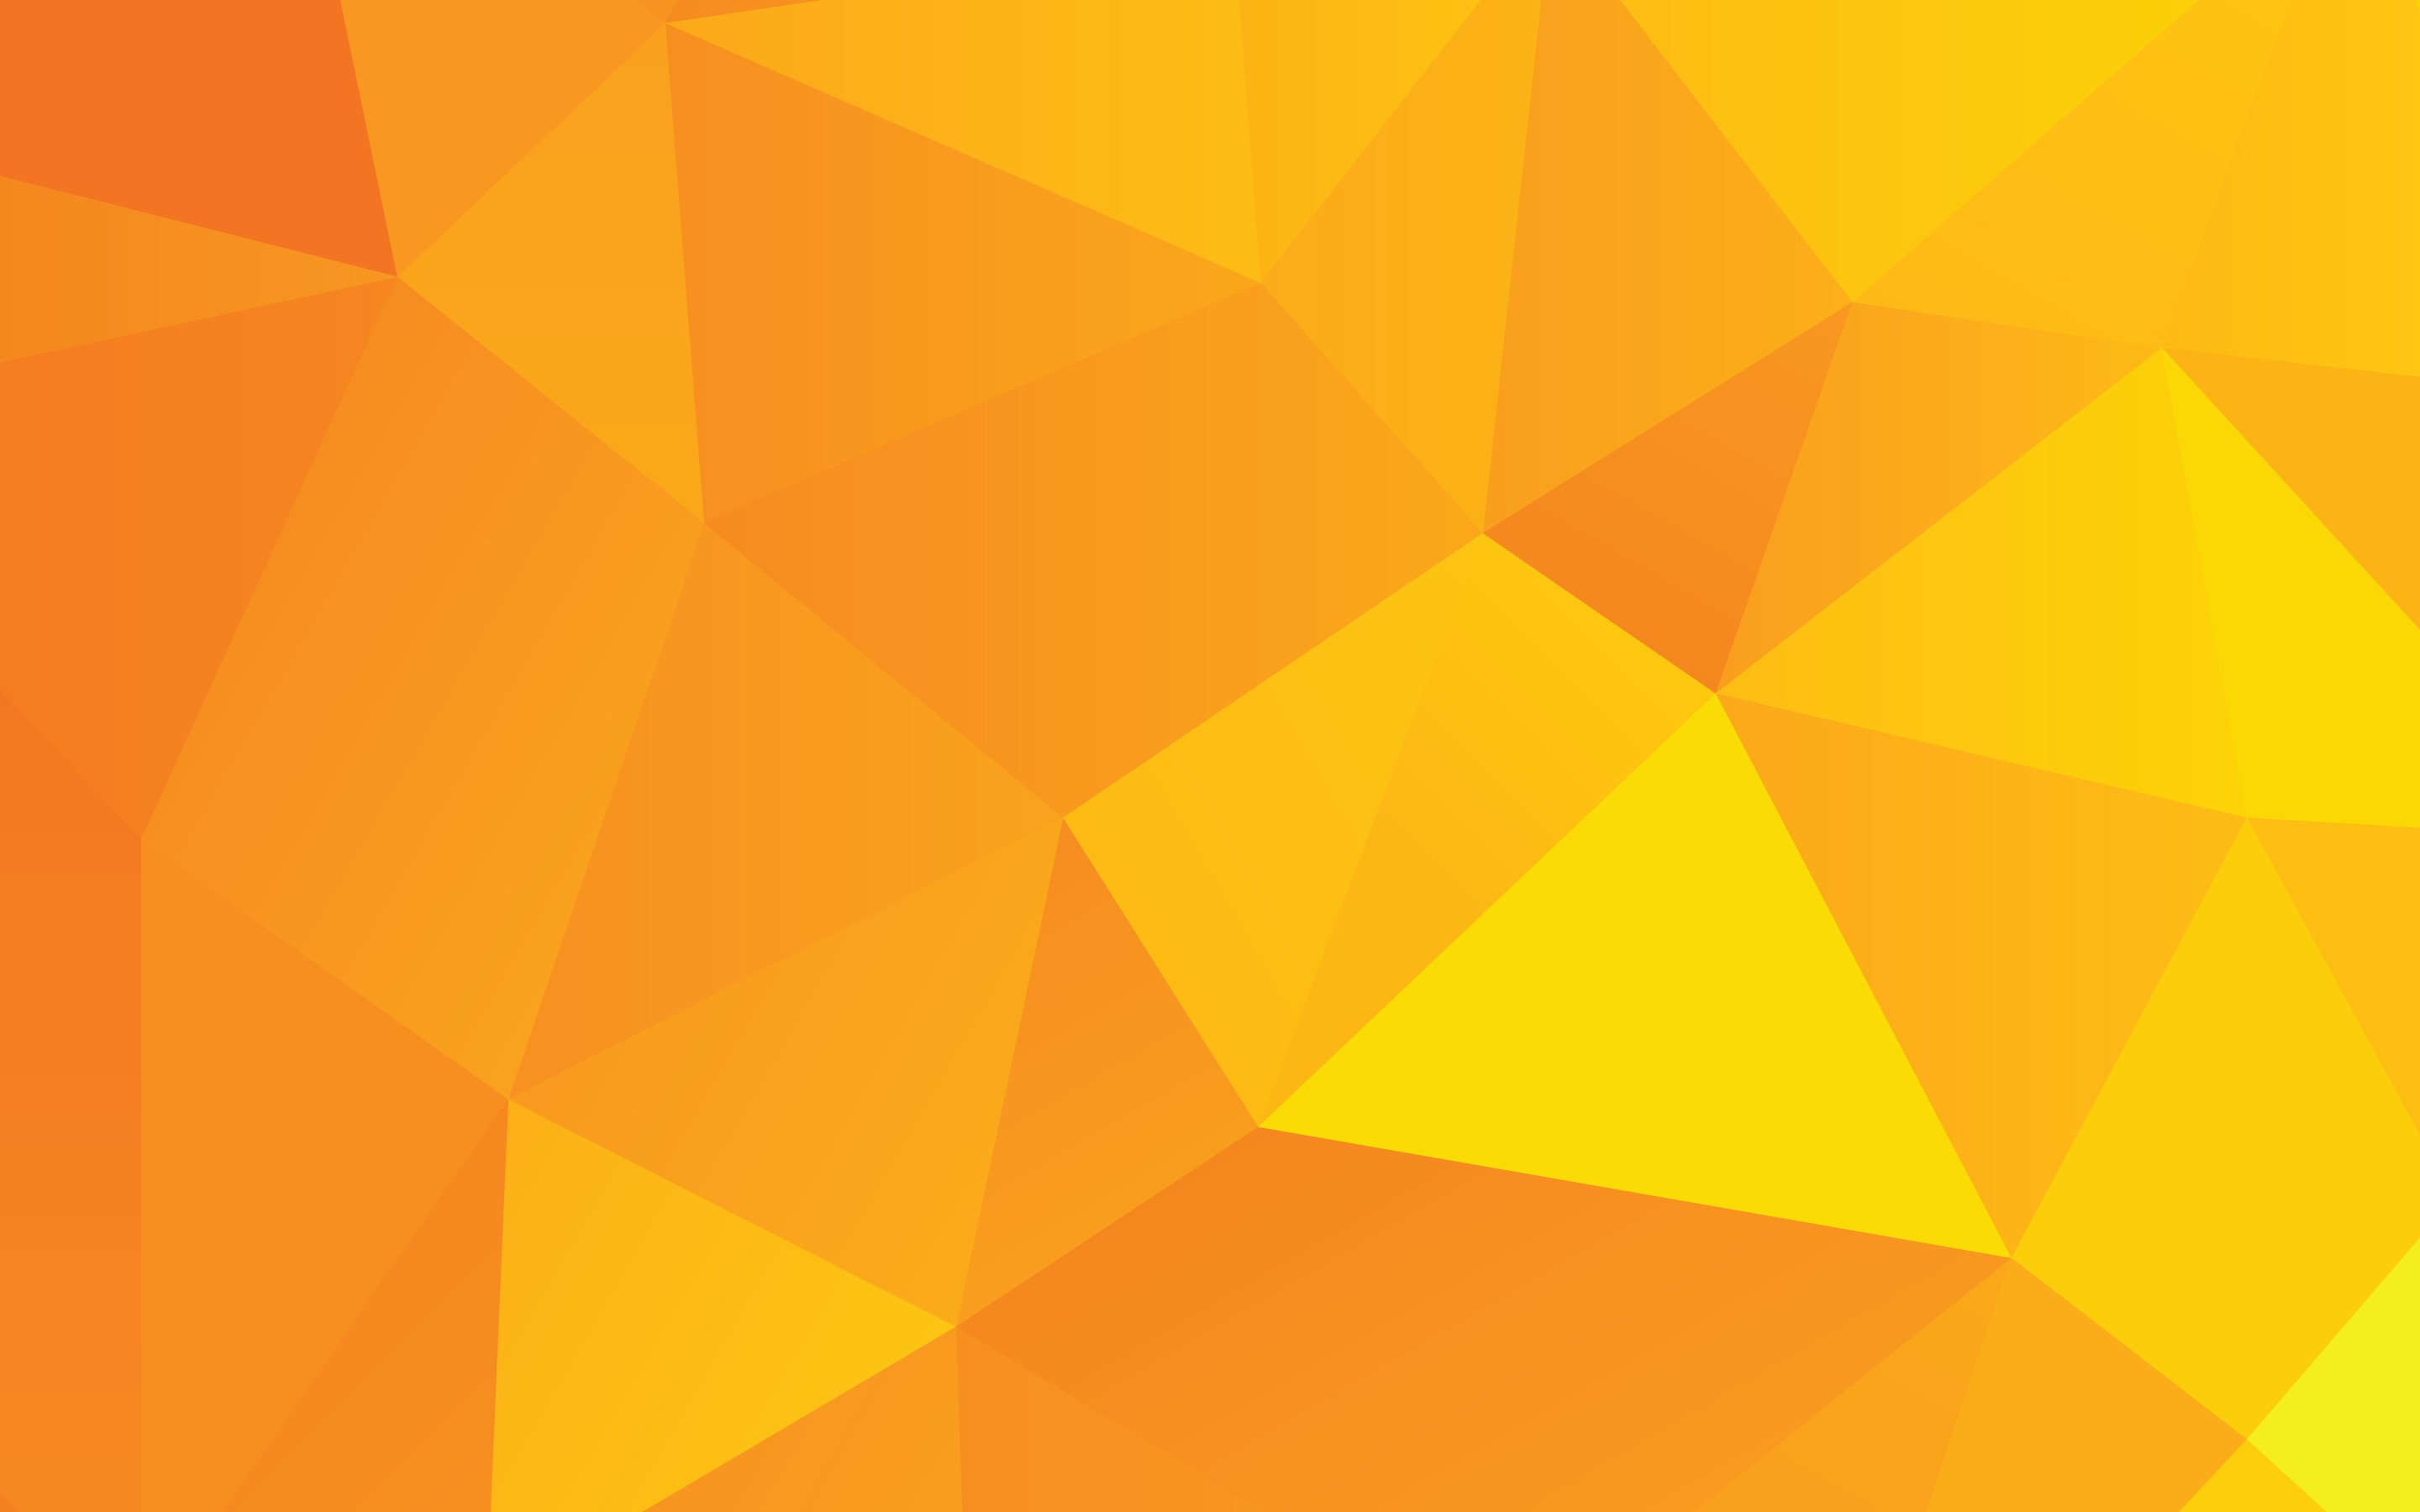 free download yellow backgrounds